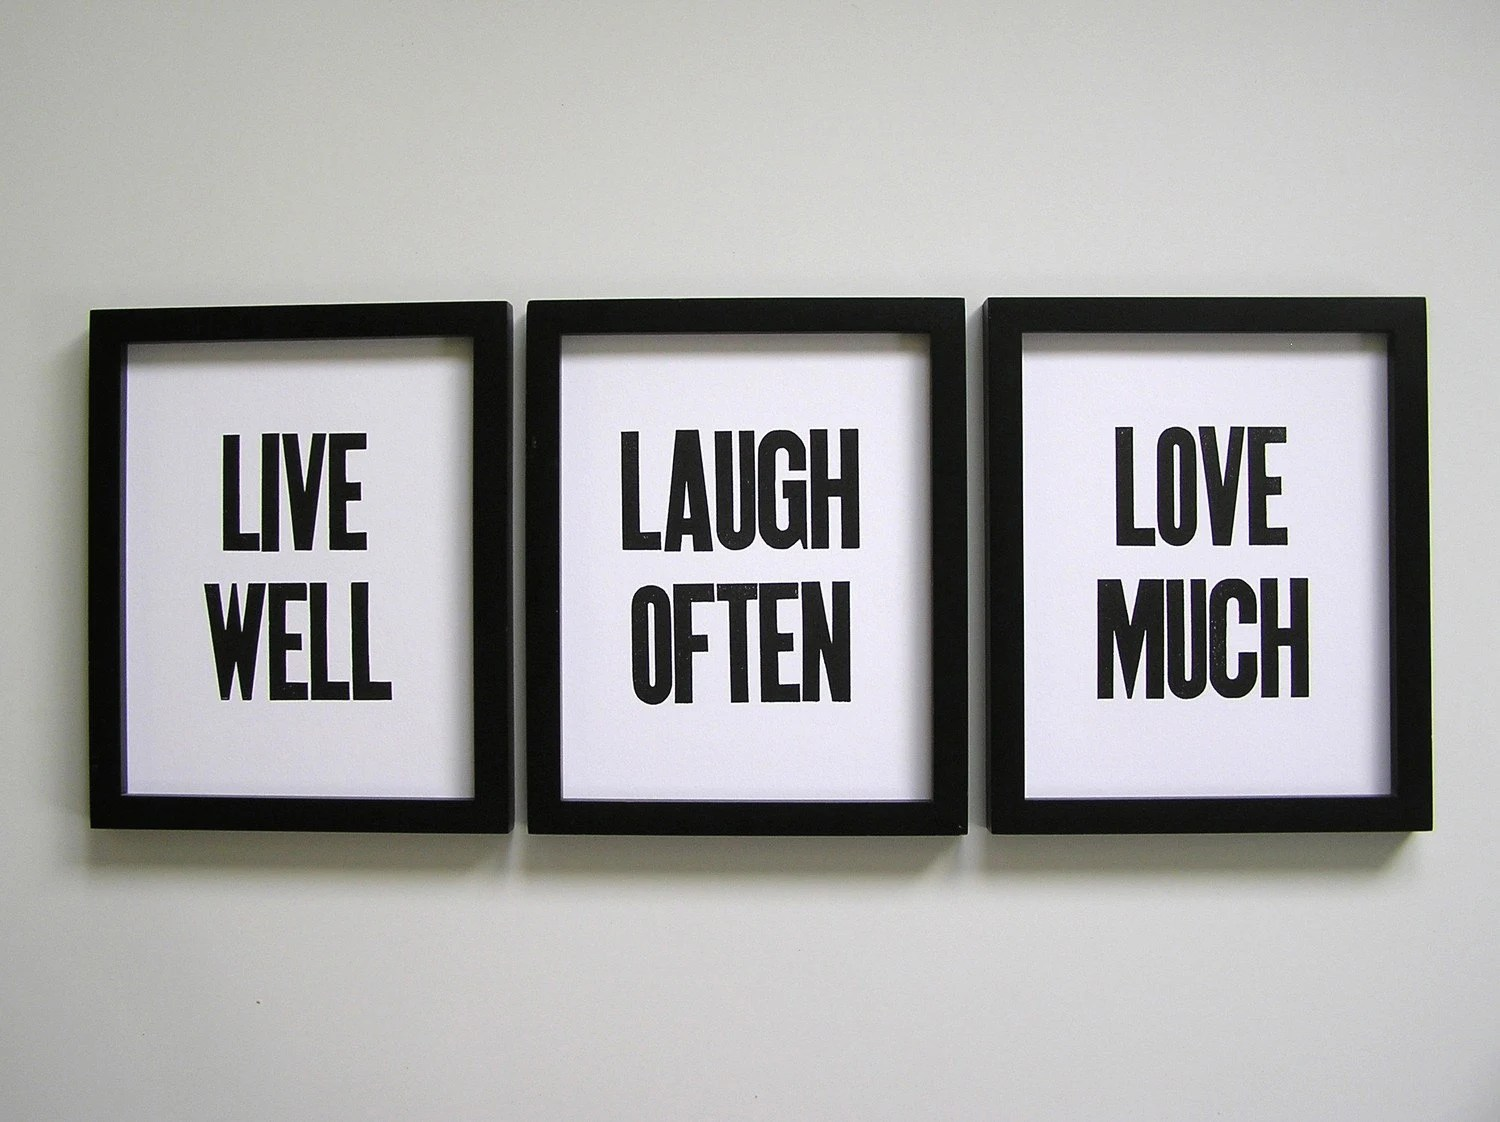 Cuadros Decorativos Con Frases Live Well Laugh Often Love Much Simple Black And White